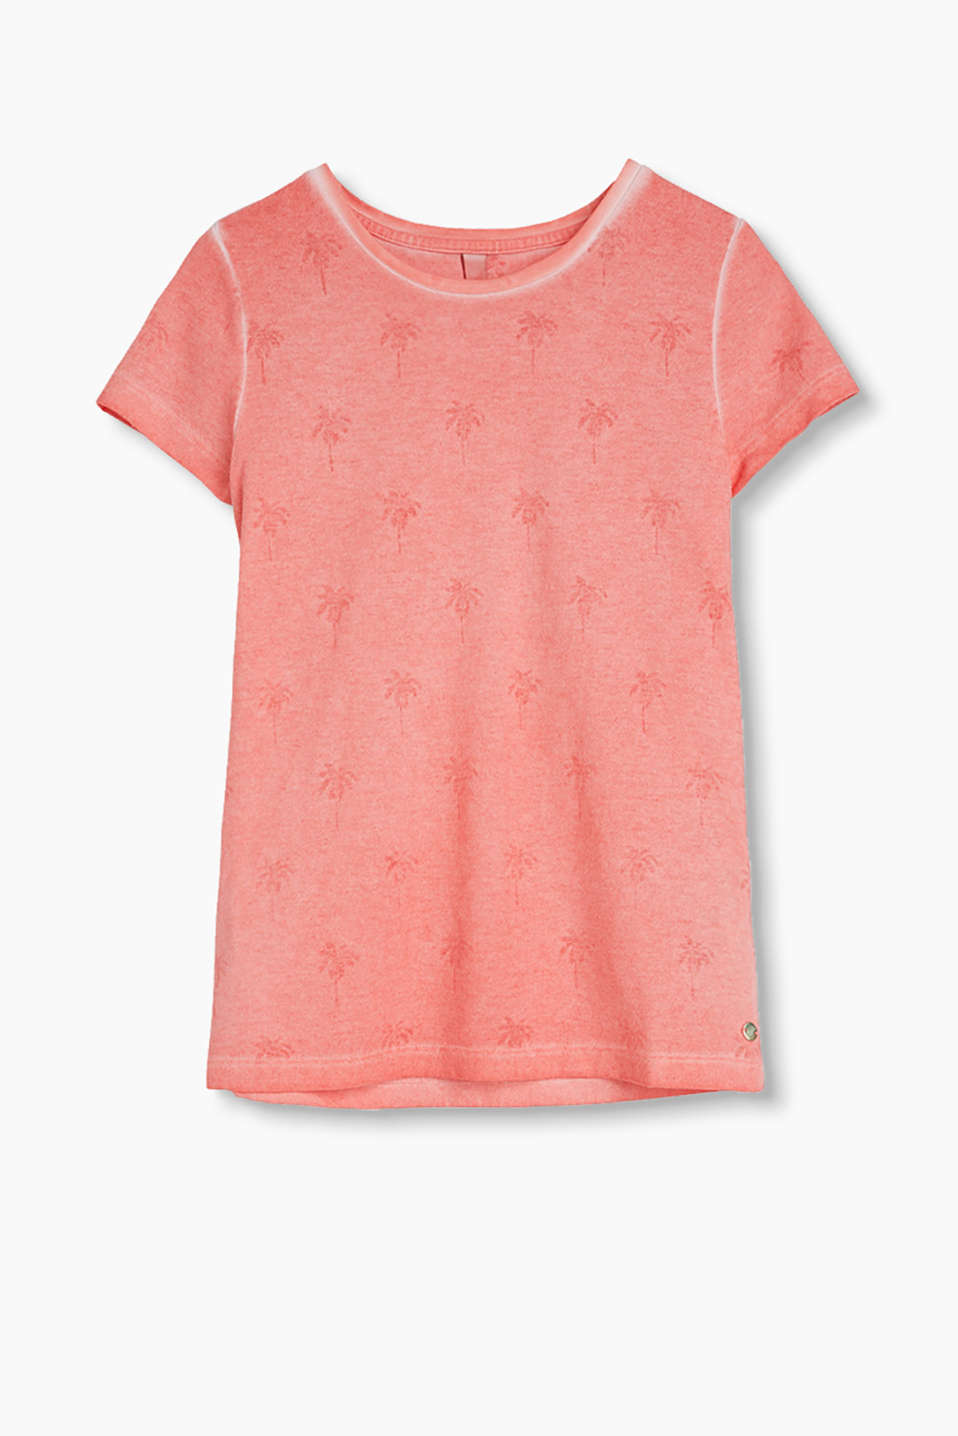 Fresh T-shirt with a palm print and casual, trendy dye